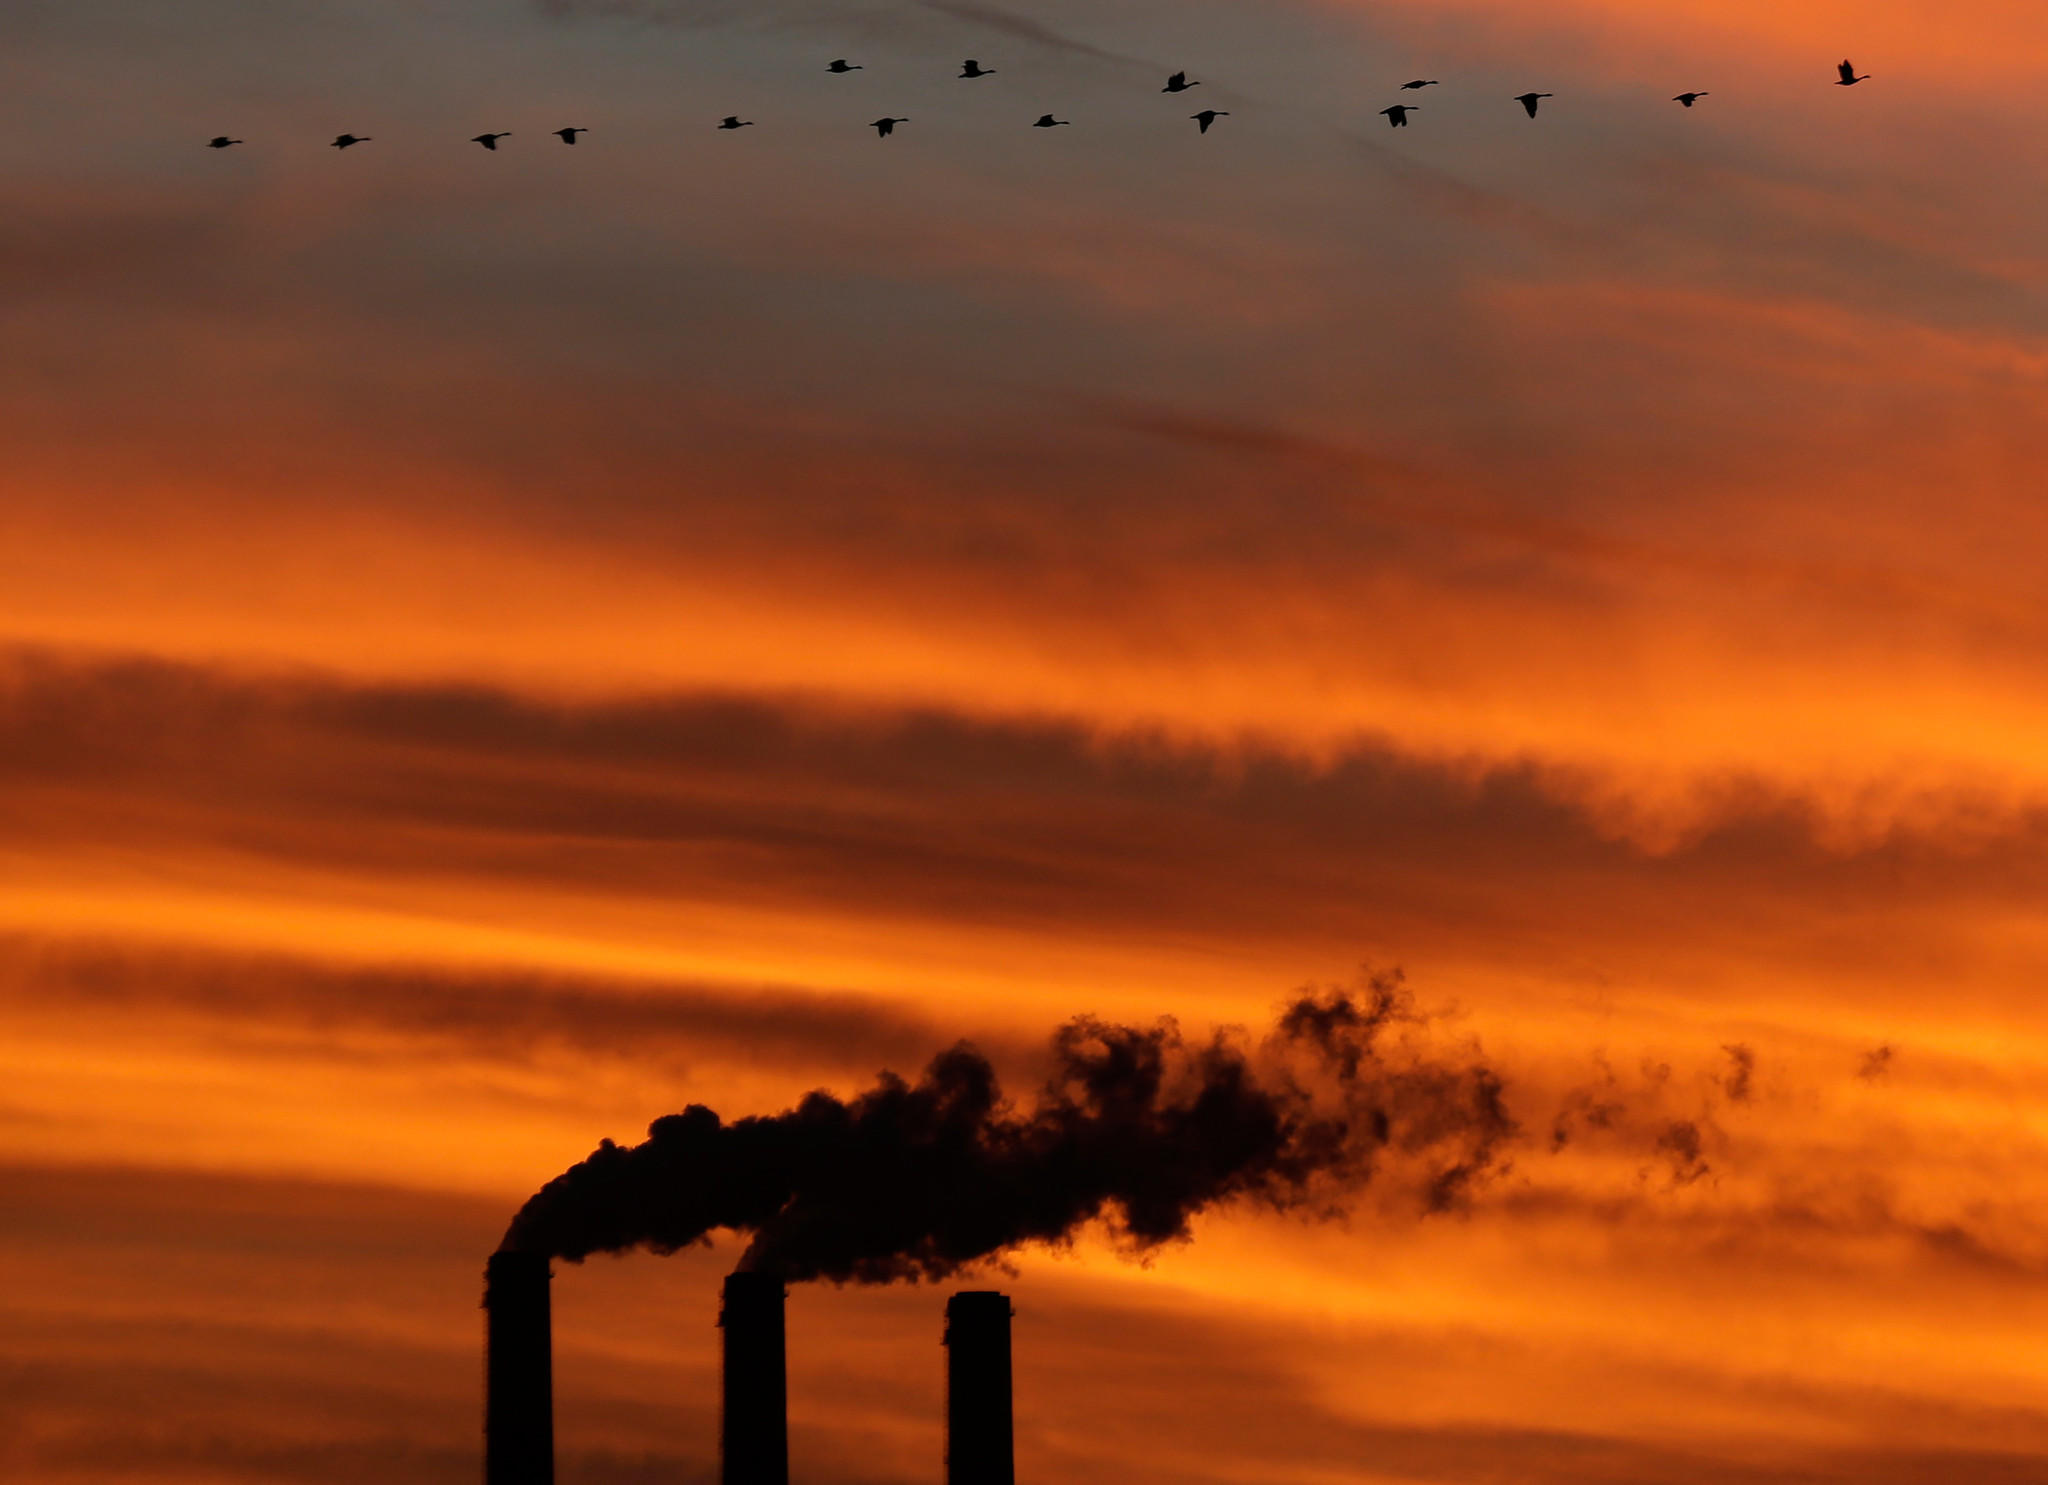 U.S. greenhouse gas emissions dropped in 2012, according to an inventory by the U.S. Environmental Protection Agency.